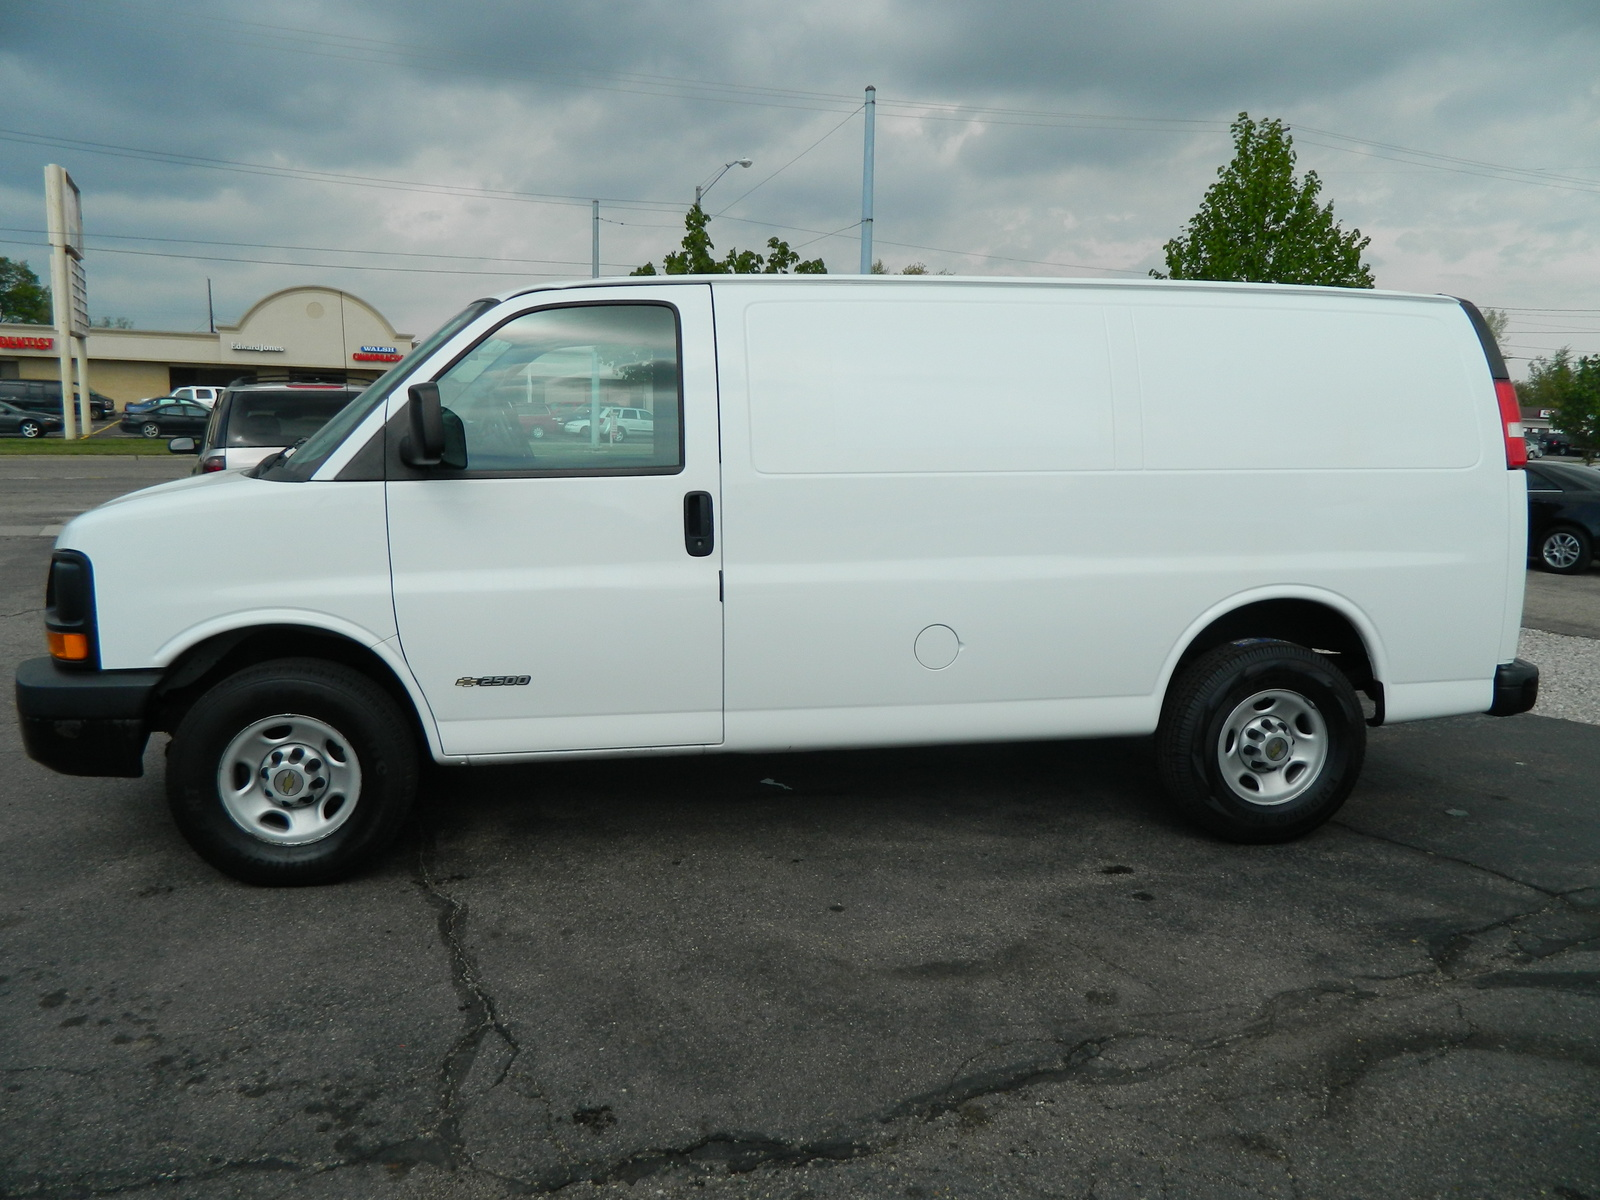 New 2017 chevy van express 2500 release reviews and models on 2005 chevrolet express cargo 3 dr g2500 cargo van pic 487572881804439597